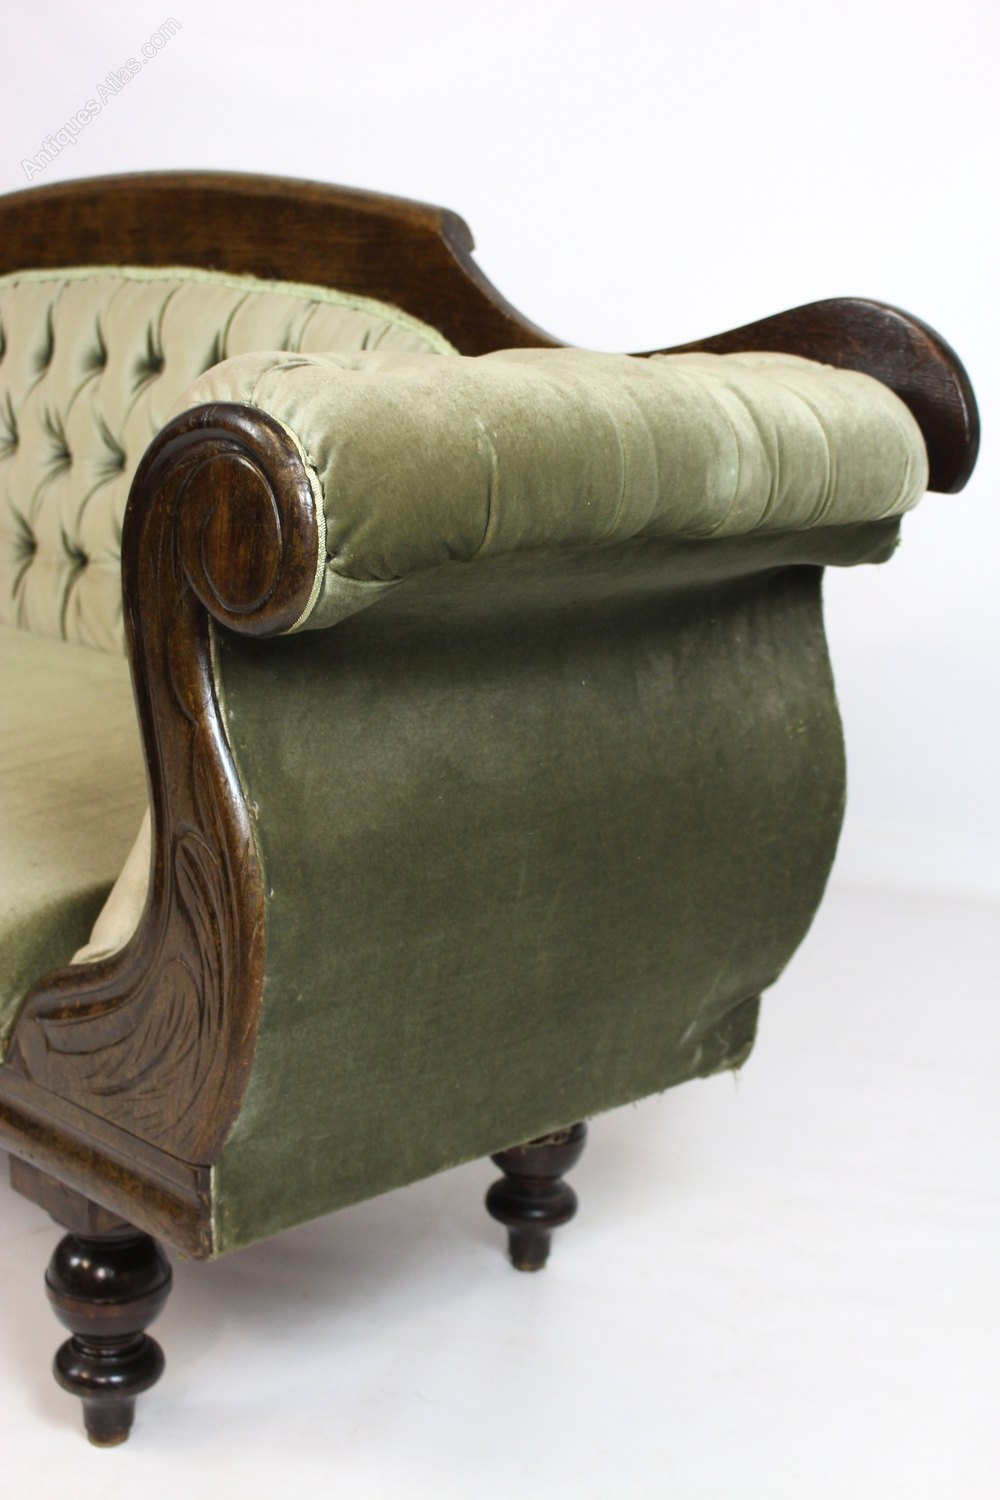 Victorian Sofas For Sale Antique Victorian Scroll Arm Sofa Settee Couch - Antiques